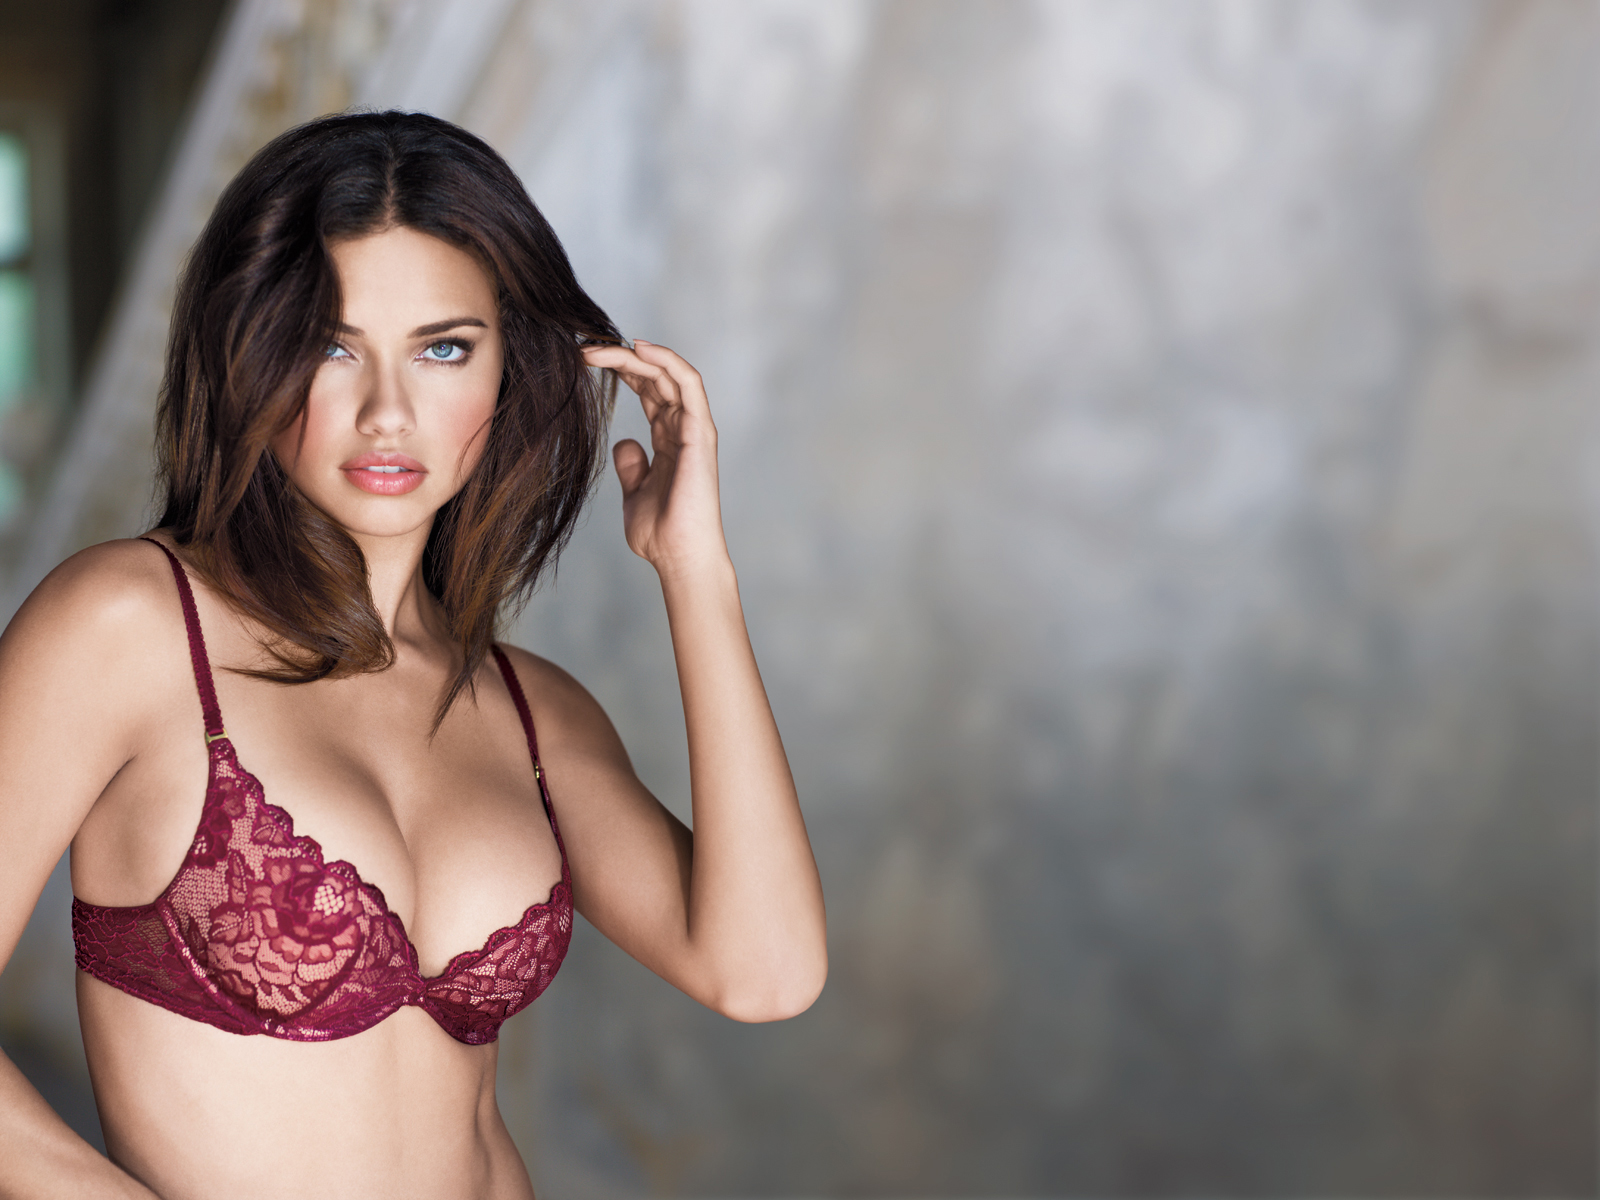 Adriana Lima 1600 x 1200 Wallpaper